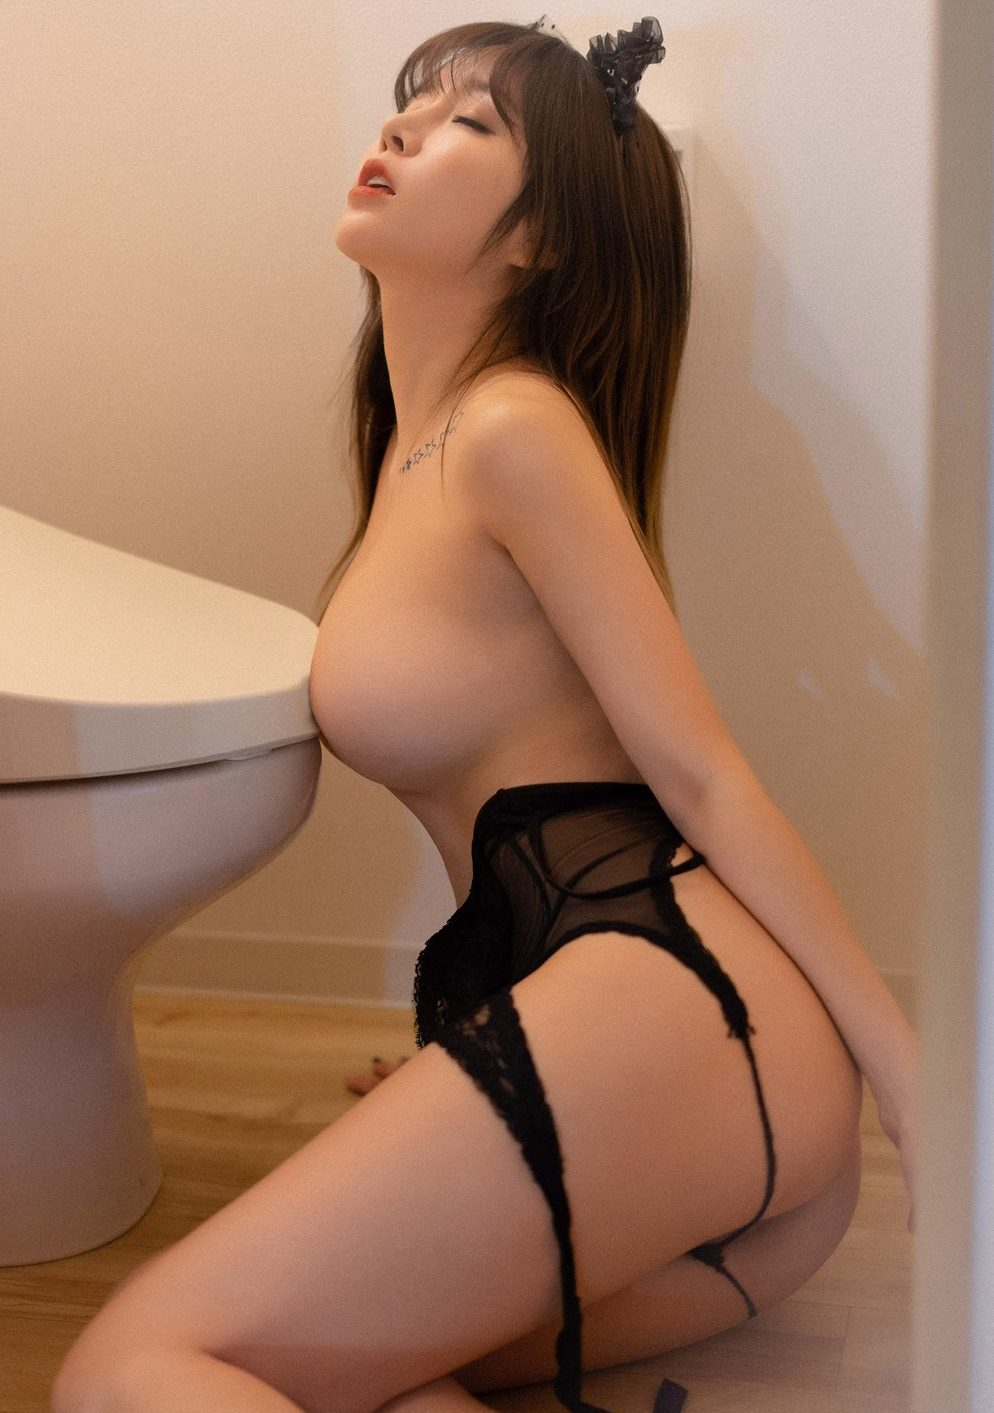 wang yu chun hot girl plays her butt